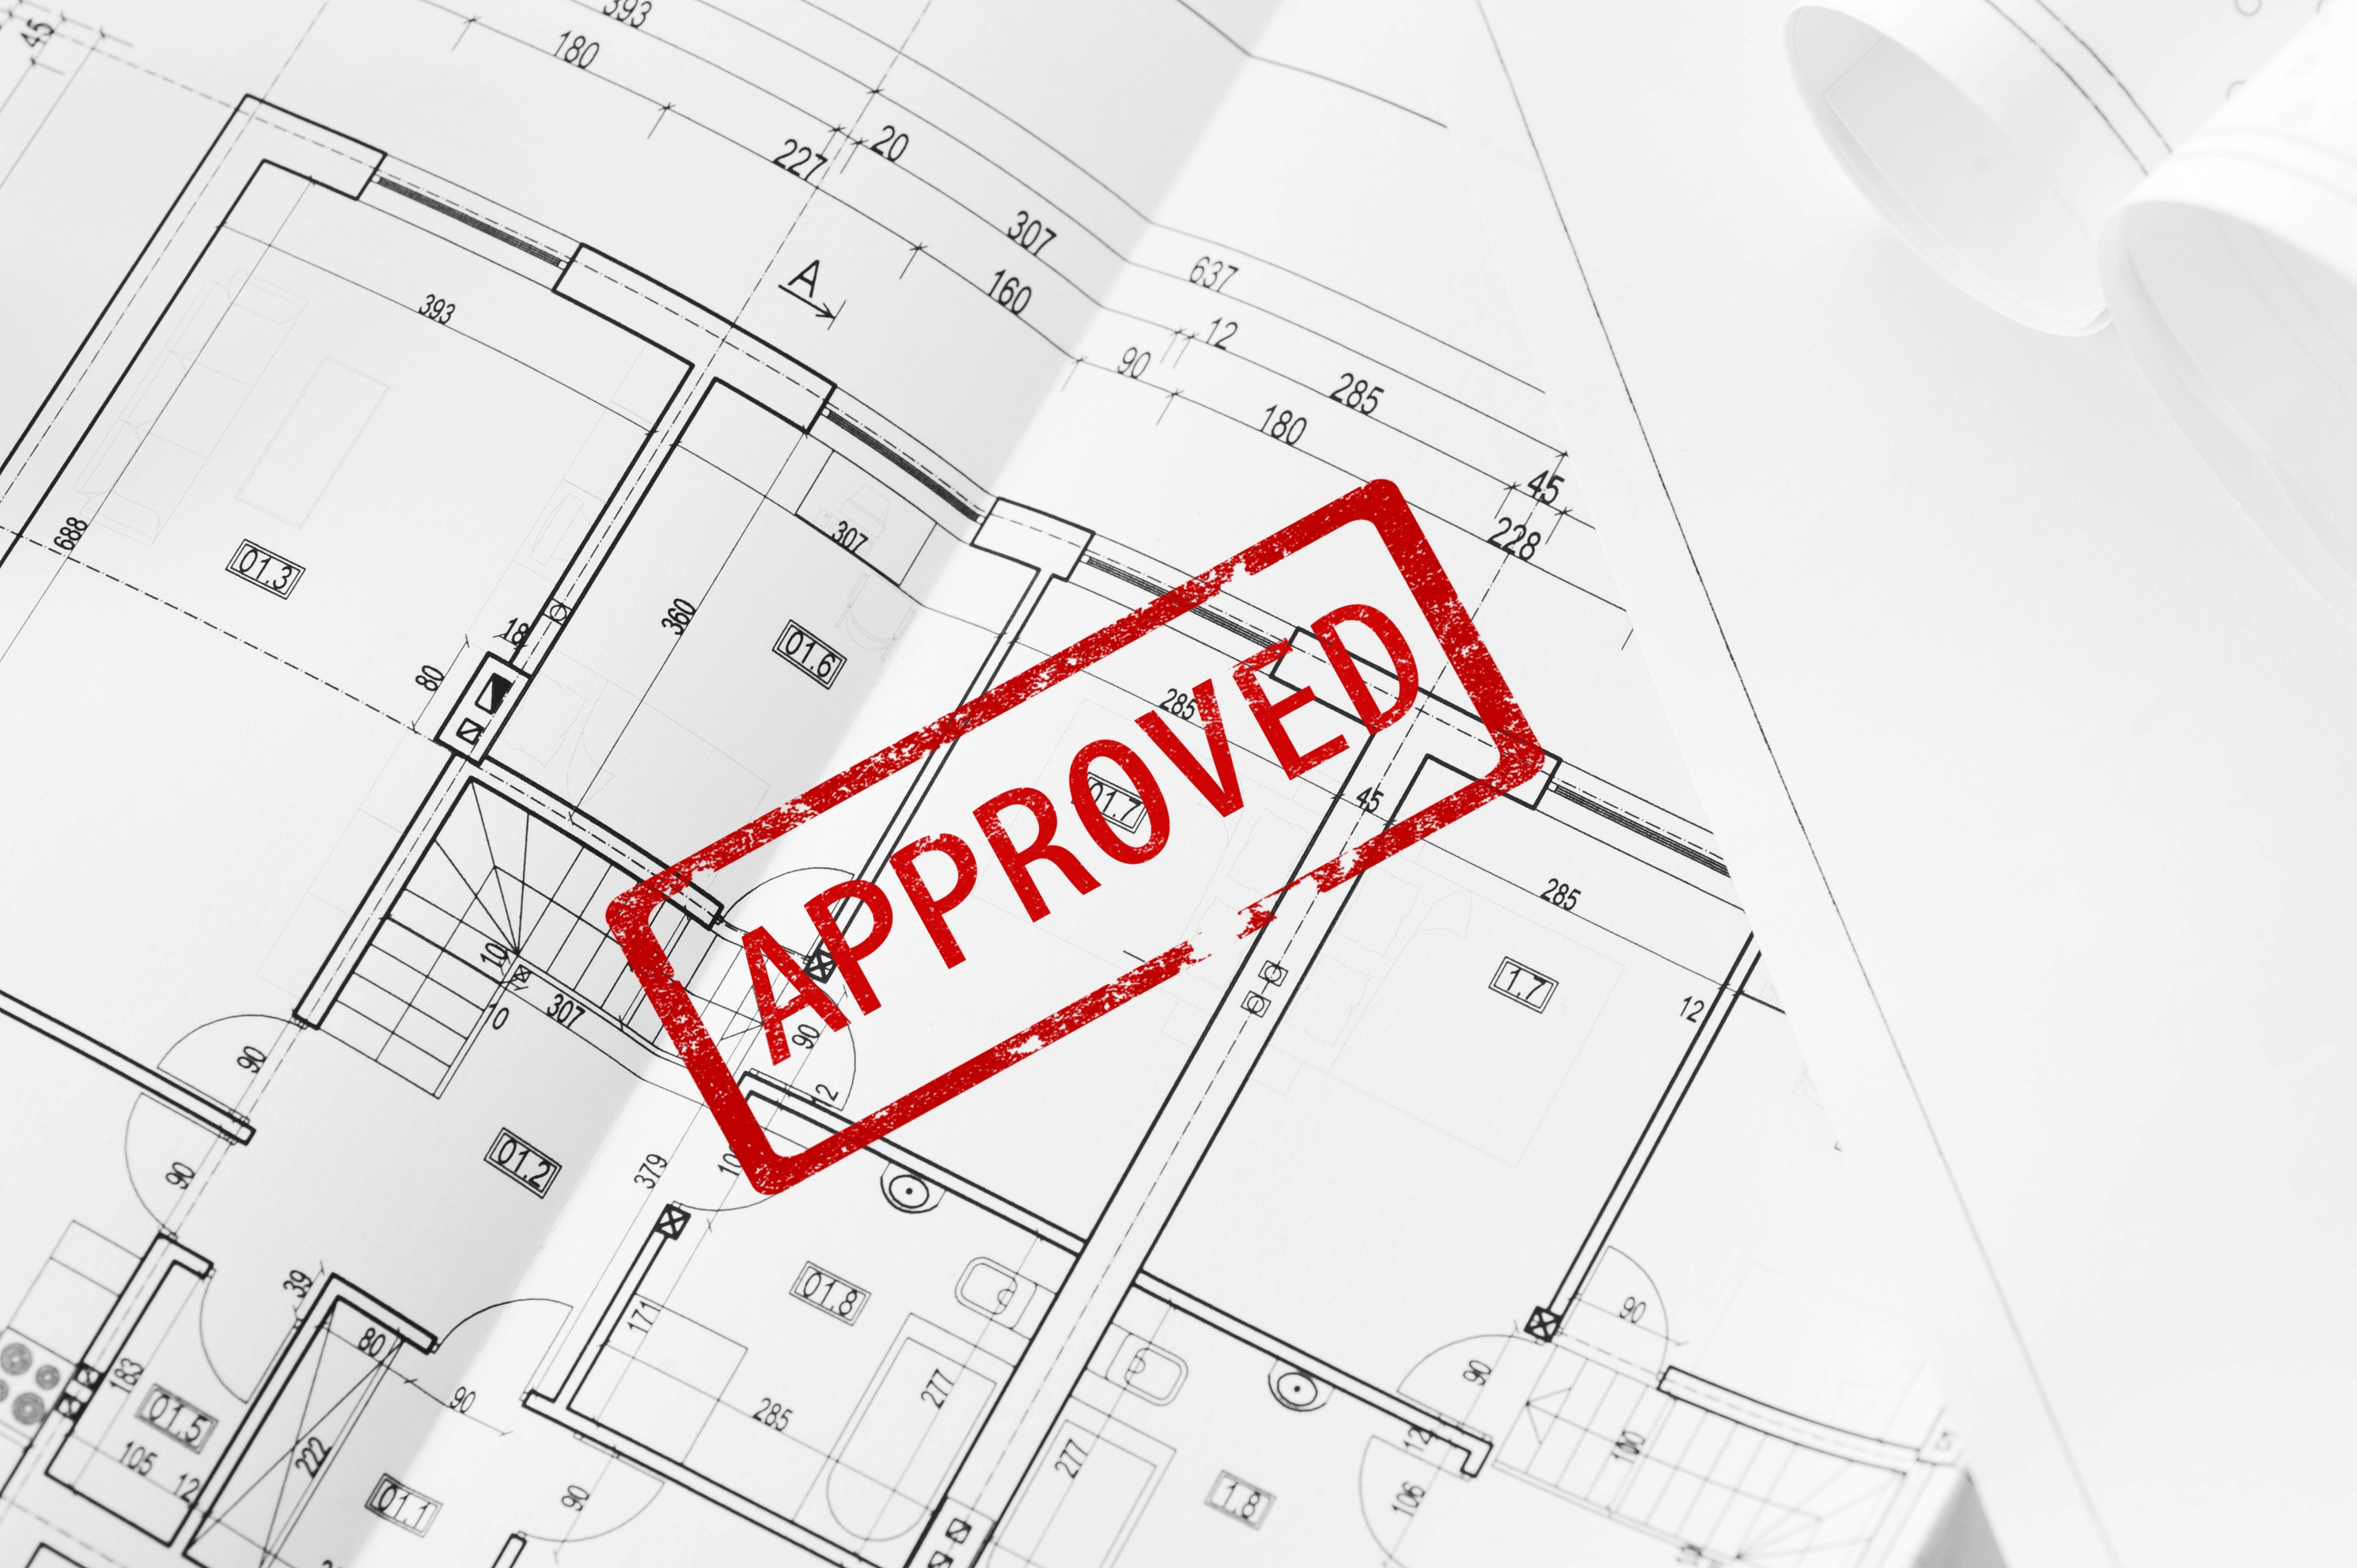 This is an image of approved planning permission